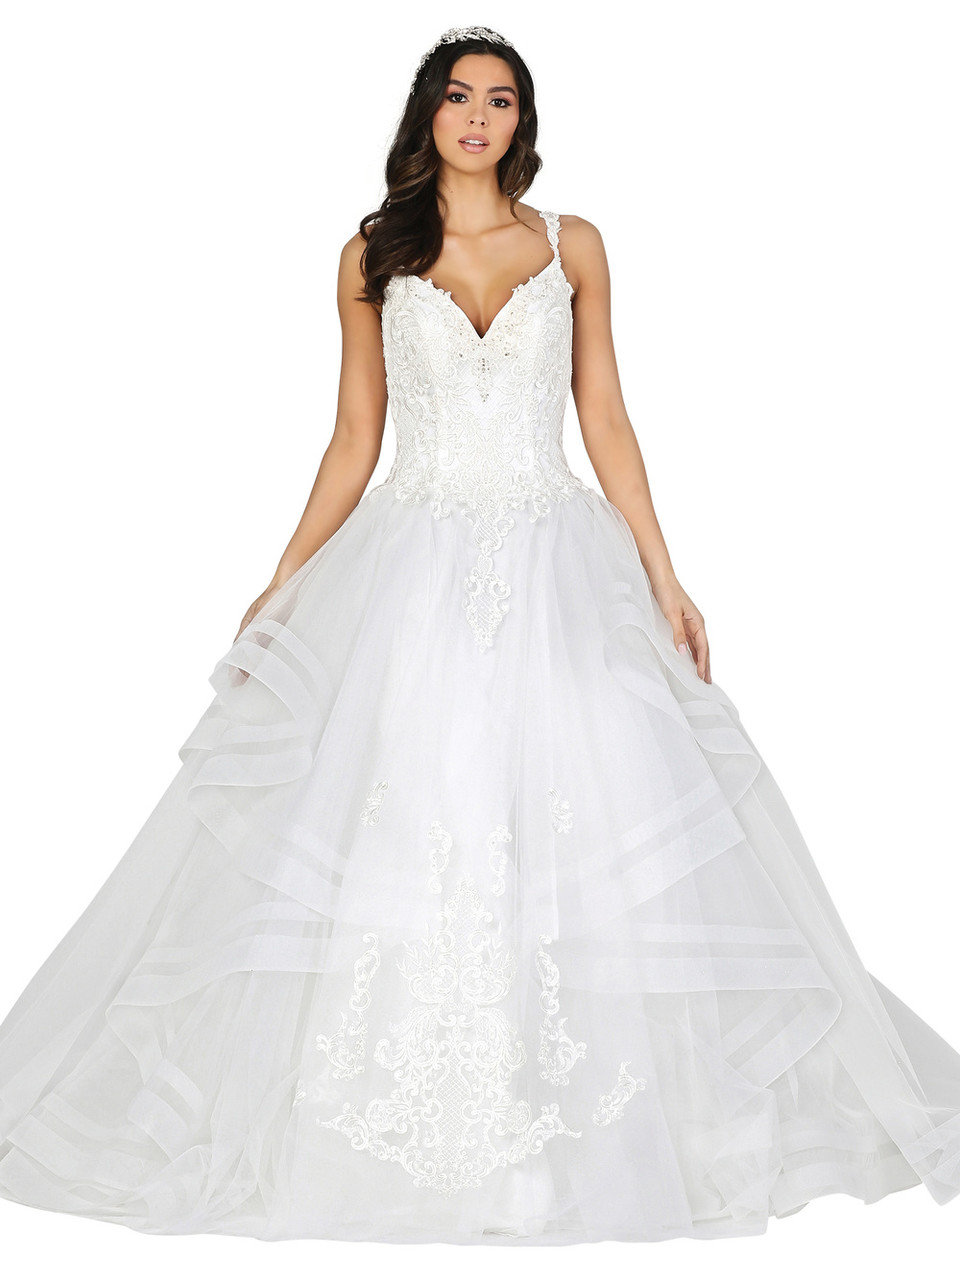 Dancing Queen 0152 Sleeveless Lace Plunging V-neck Ballgown